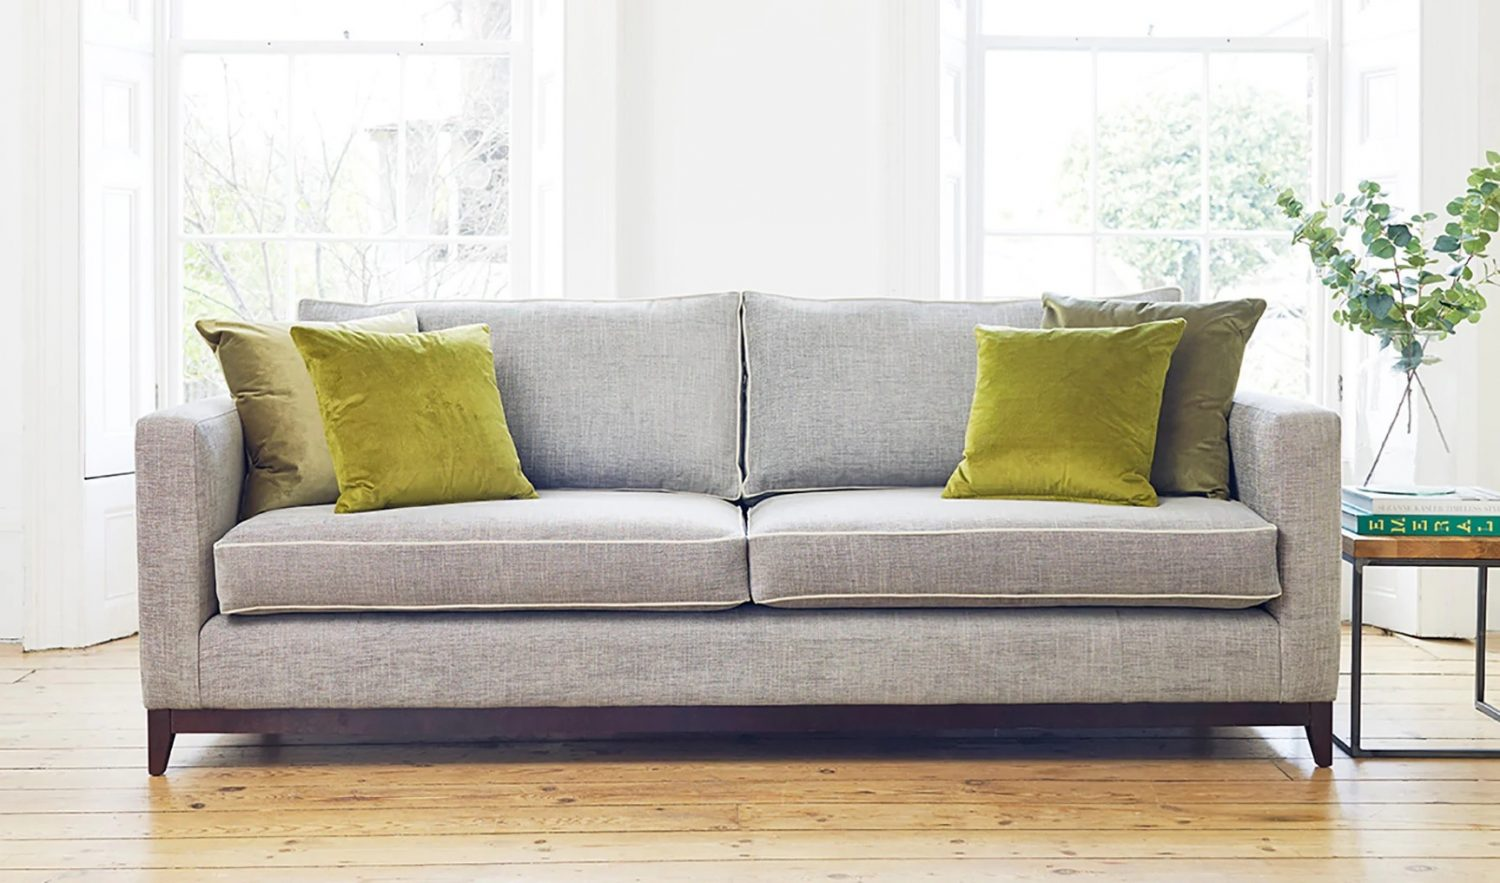 The Best Stores to Shop for Affordable Furniture in UK